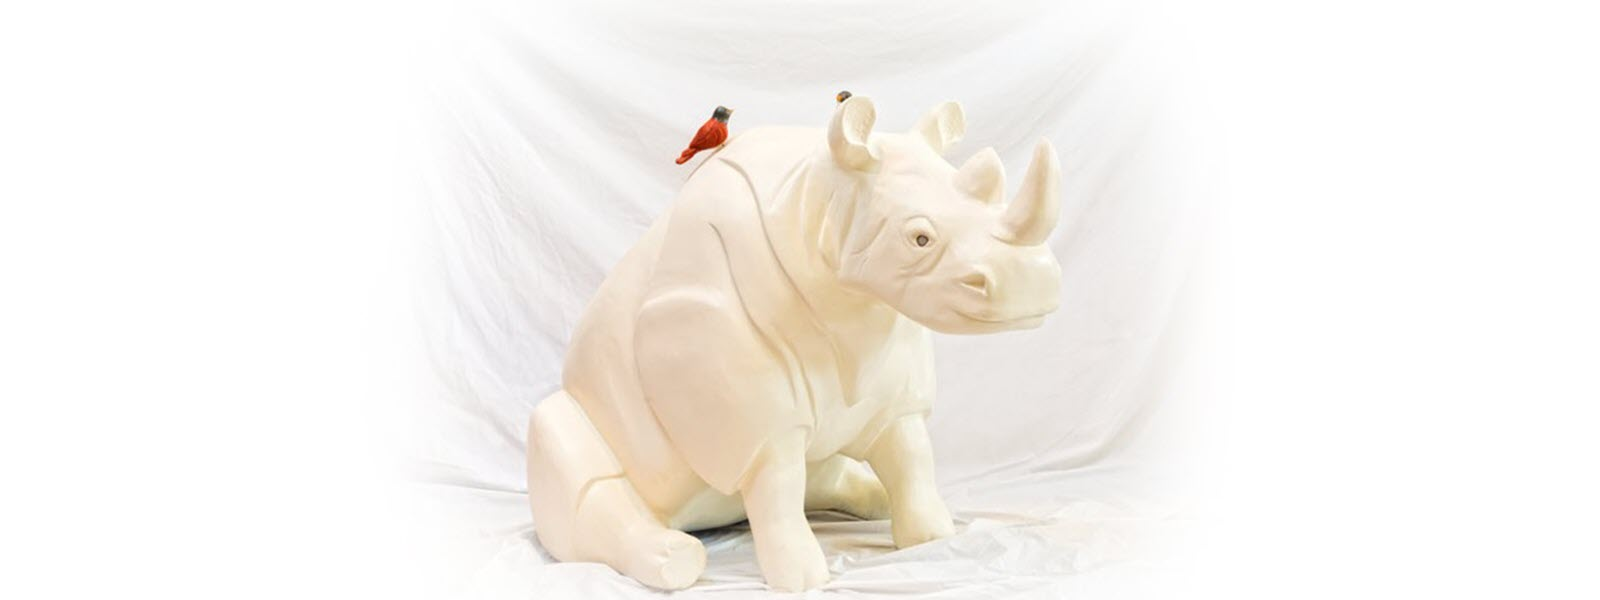 rhino-5 900sq wide 1600x600.jpg